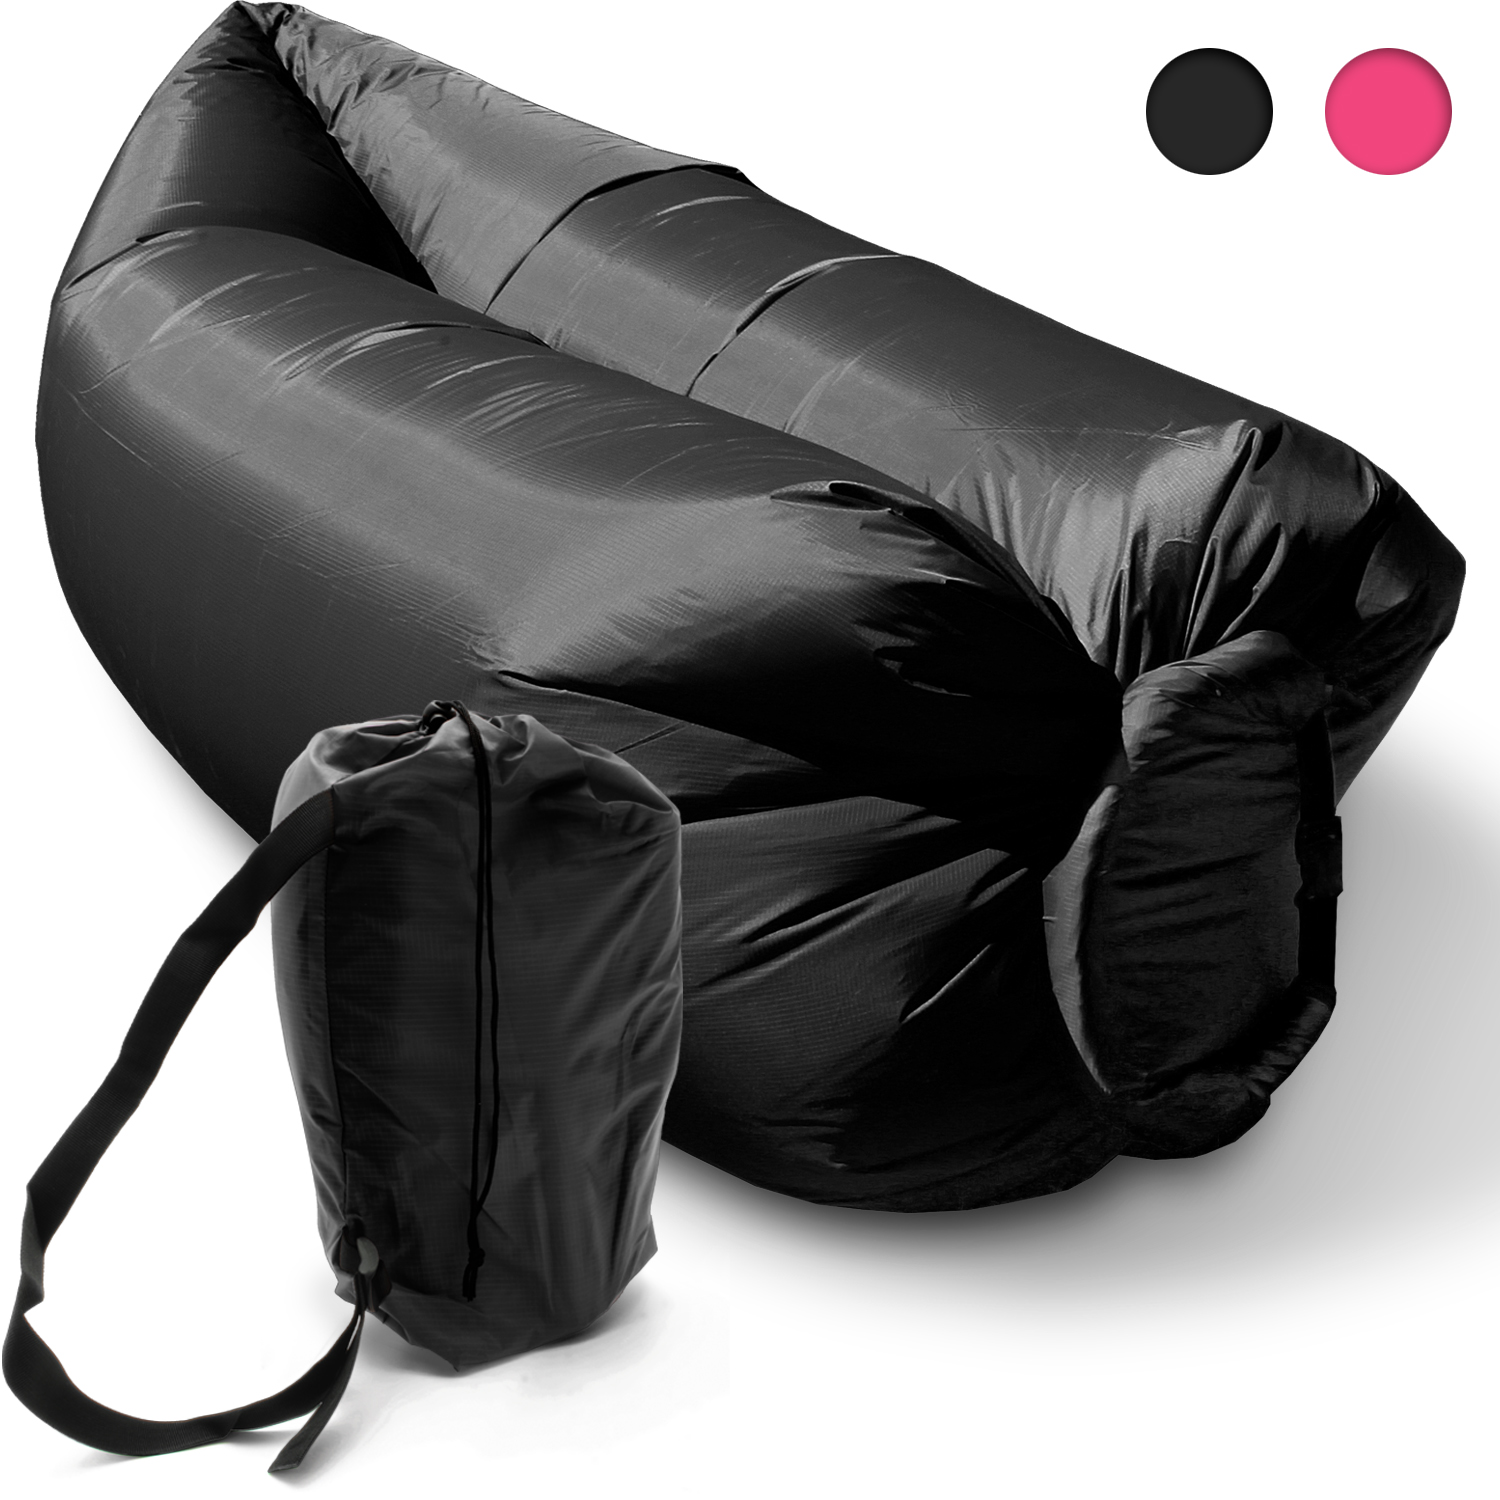 Inflatable Camping Lounger Sleeping Chair Bed Sofa Hangout  : U541620120Black20Inflatable20Outdoor20Air20Lounger20main from www.ebay.com.au size 1500 x 1500 jpeg 727kB